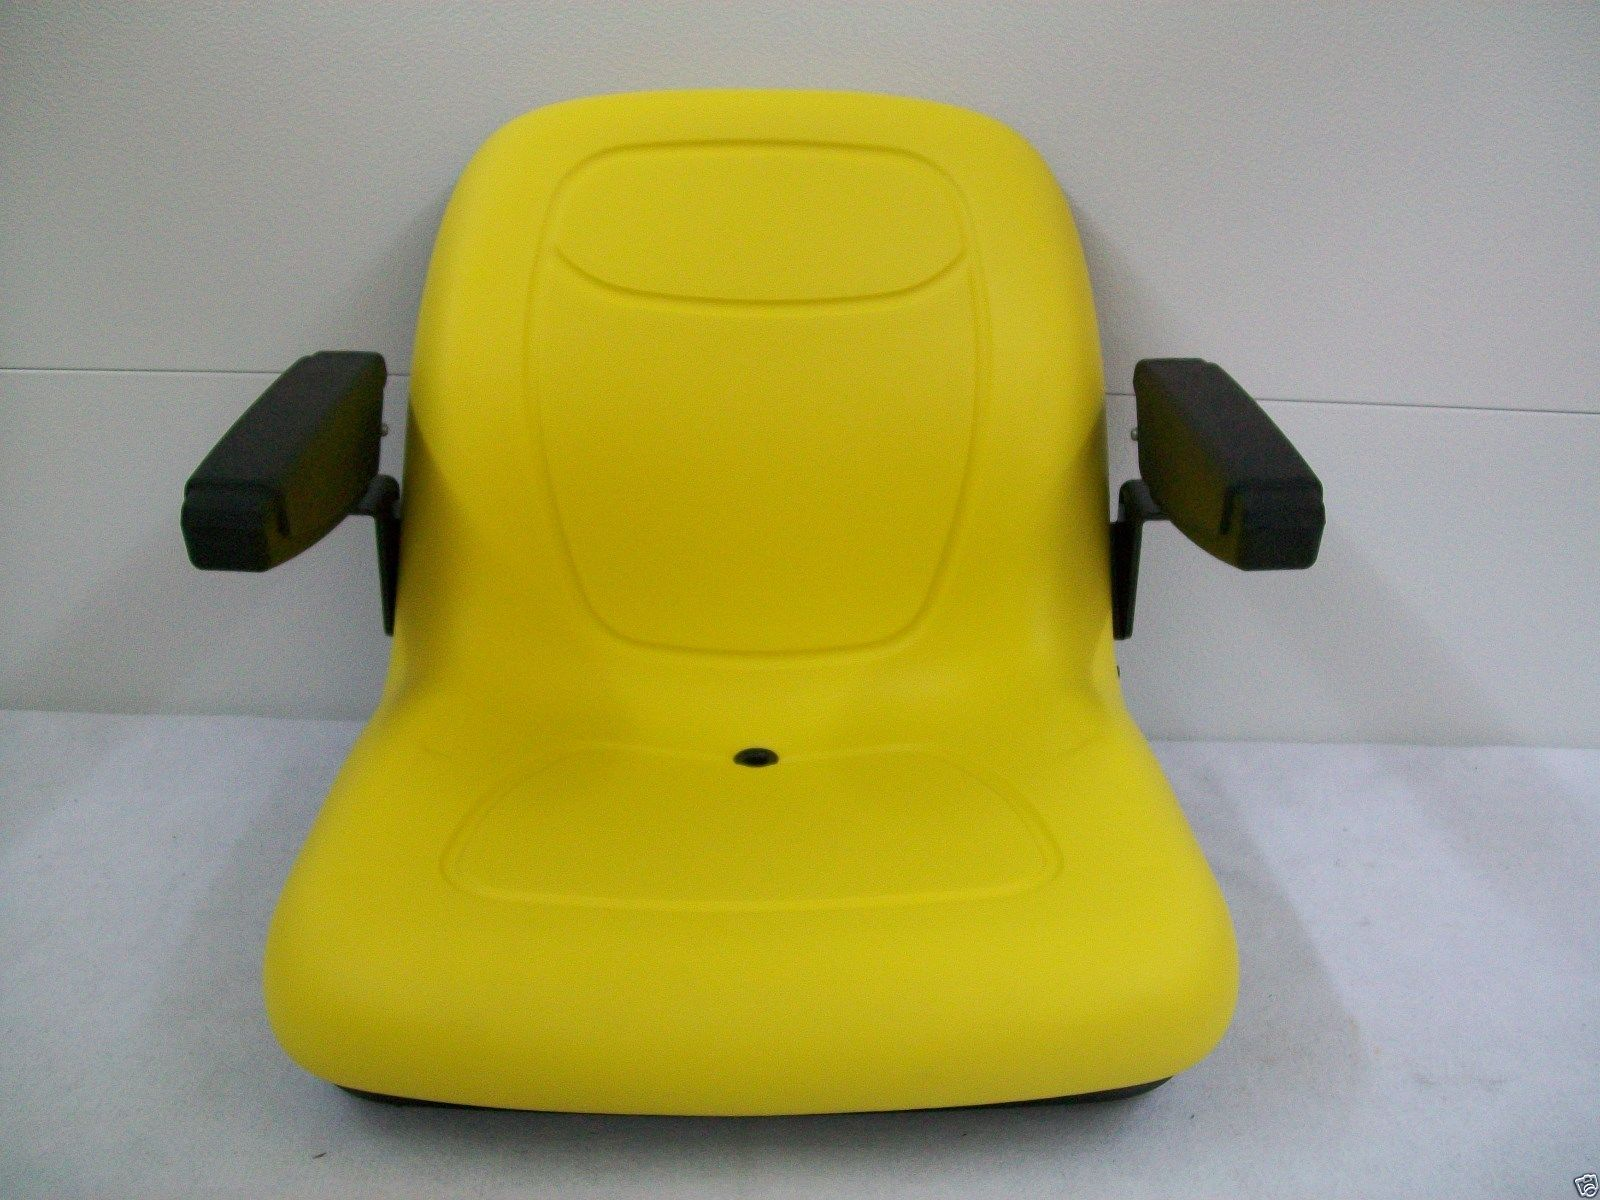 YELLOW SEAT JOHN DEERE F510, 240, 245, 260, 265, 285, 320, 325, 335, 345,  425, AM123666 #GU